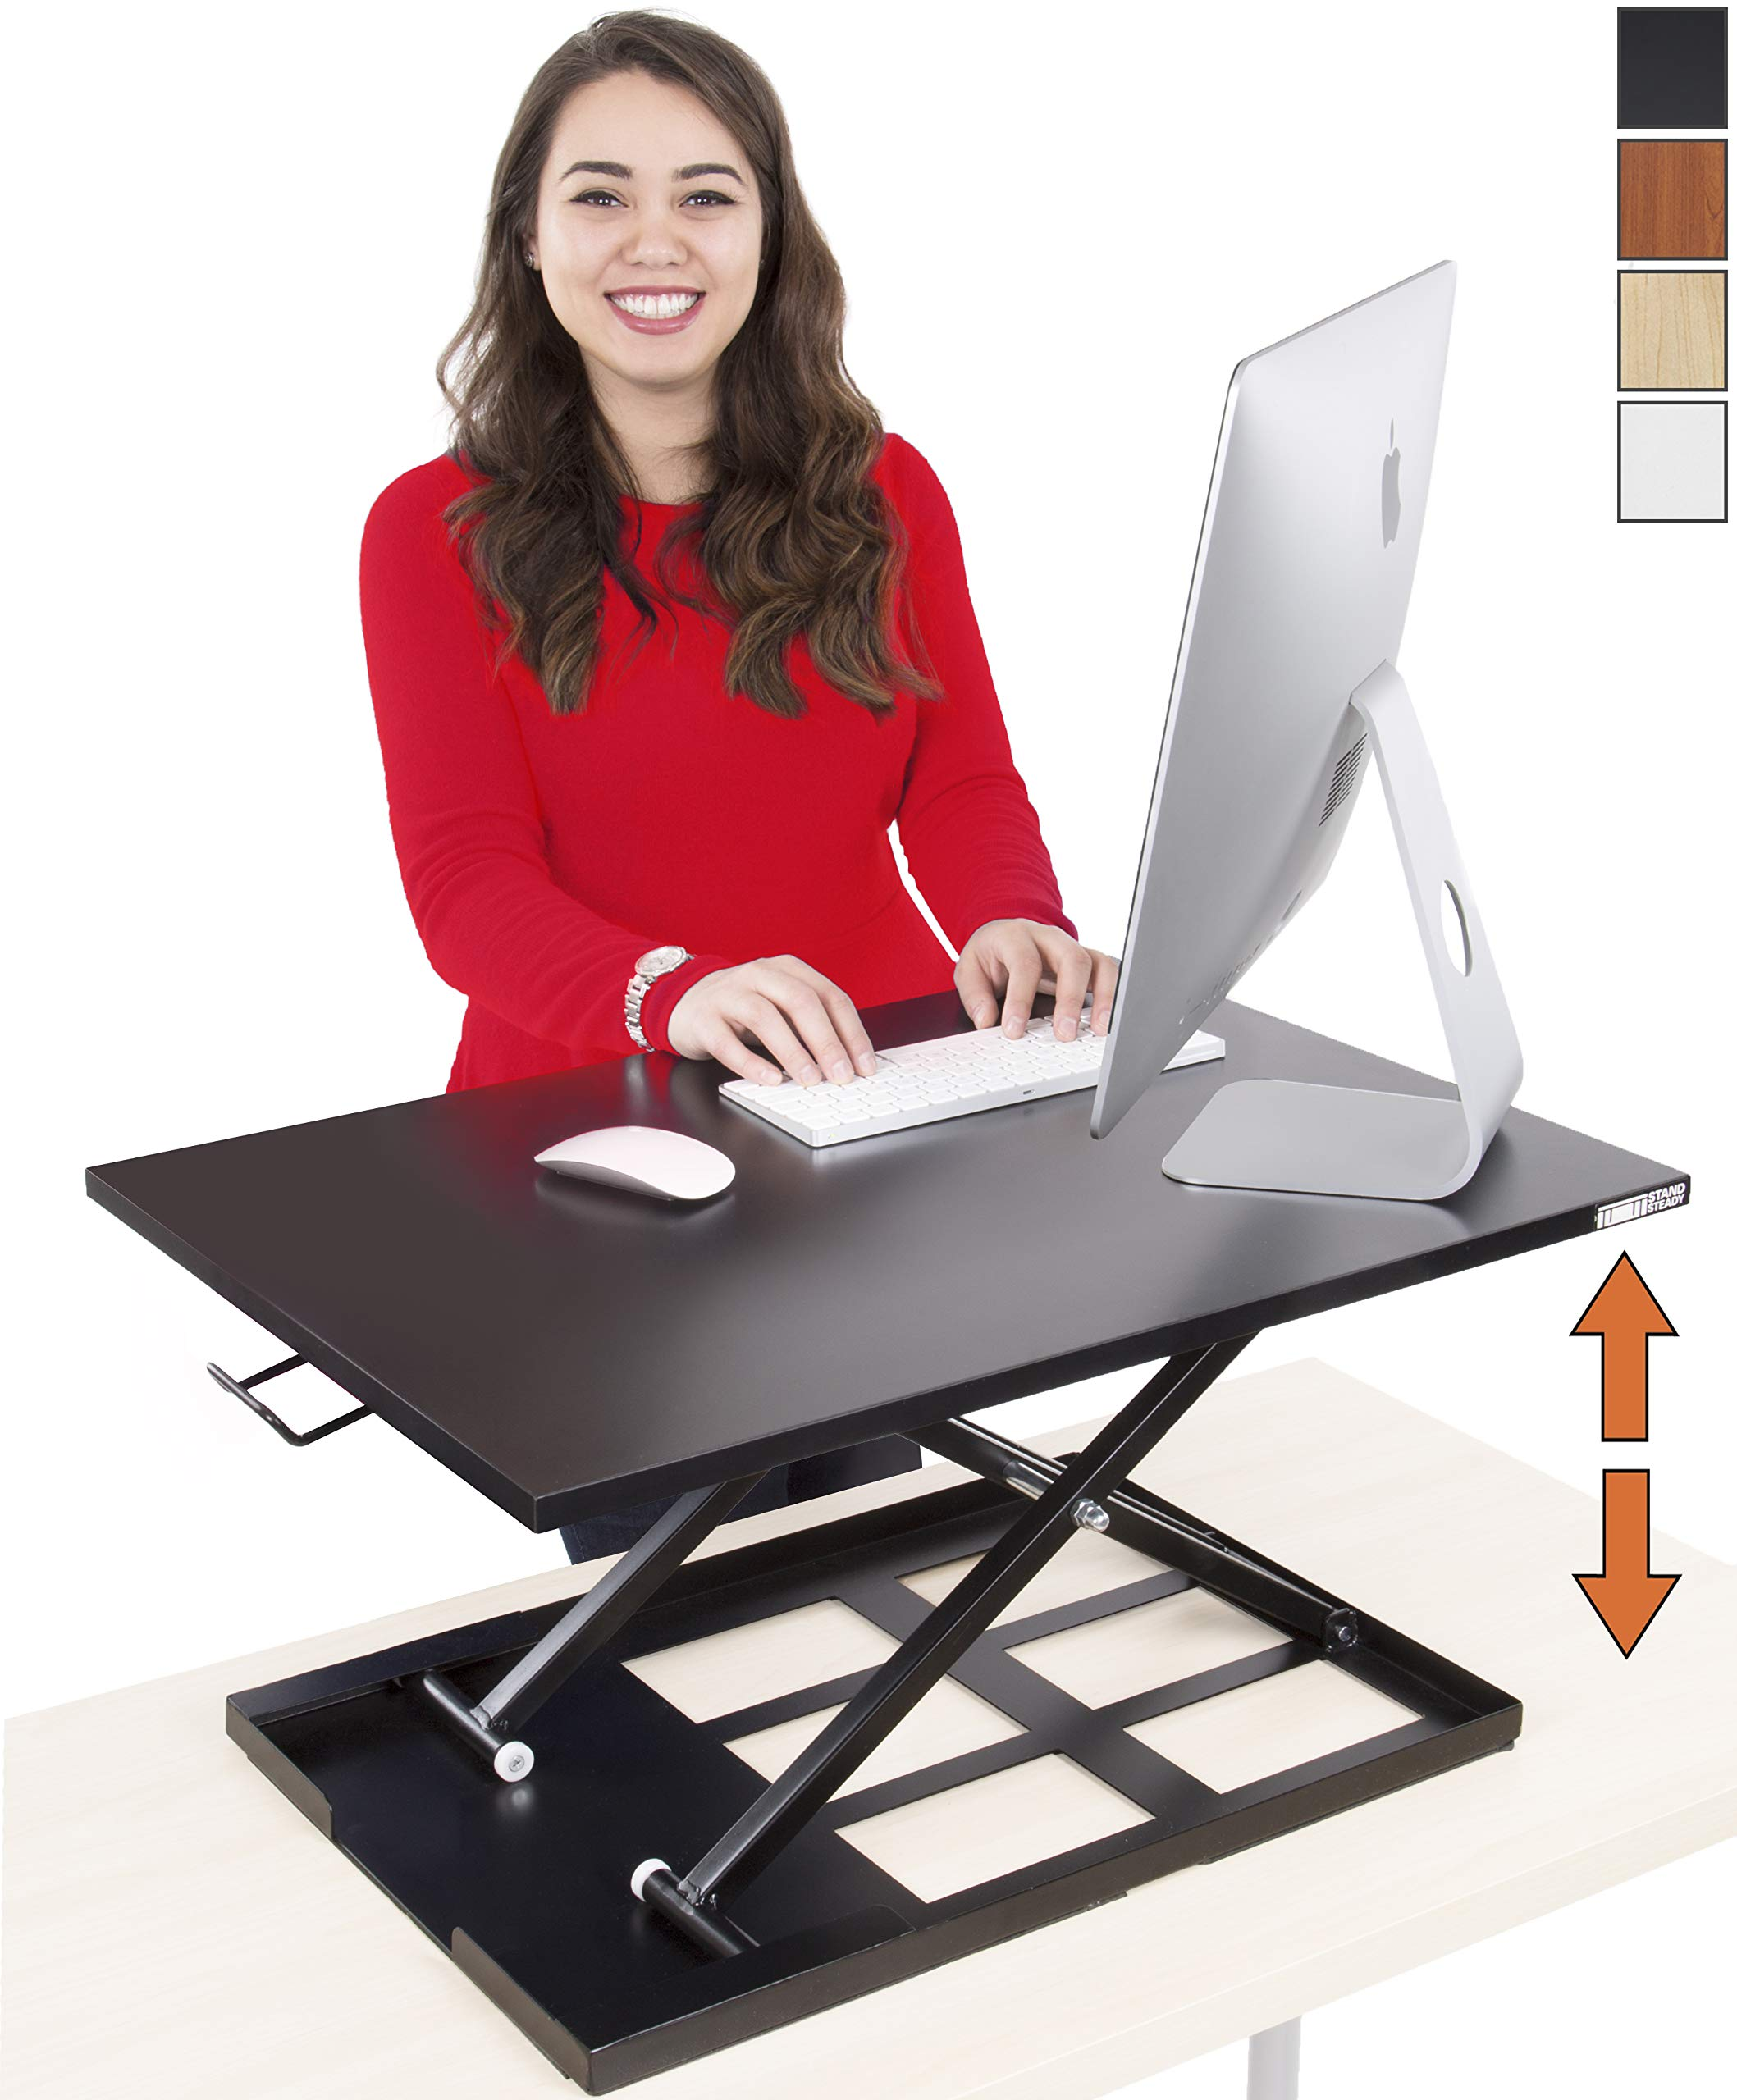 Stand Steady Standing Desk X-Elite Standing Desk | X-Elite Pro Version, Instantly Convert Any Desk into a Sit/Stand up Desk, Height-Adjustable (Black) by Stand Steady